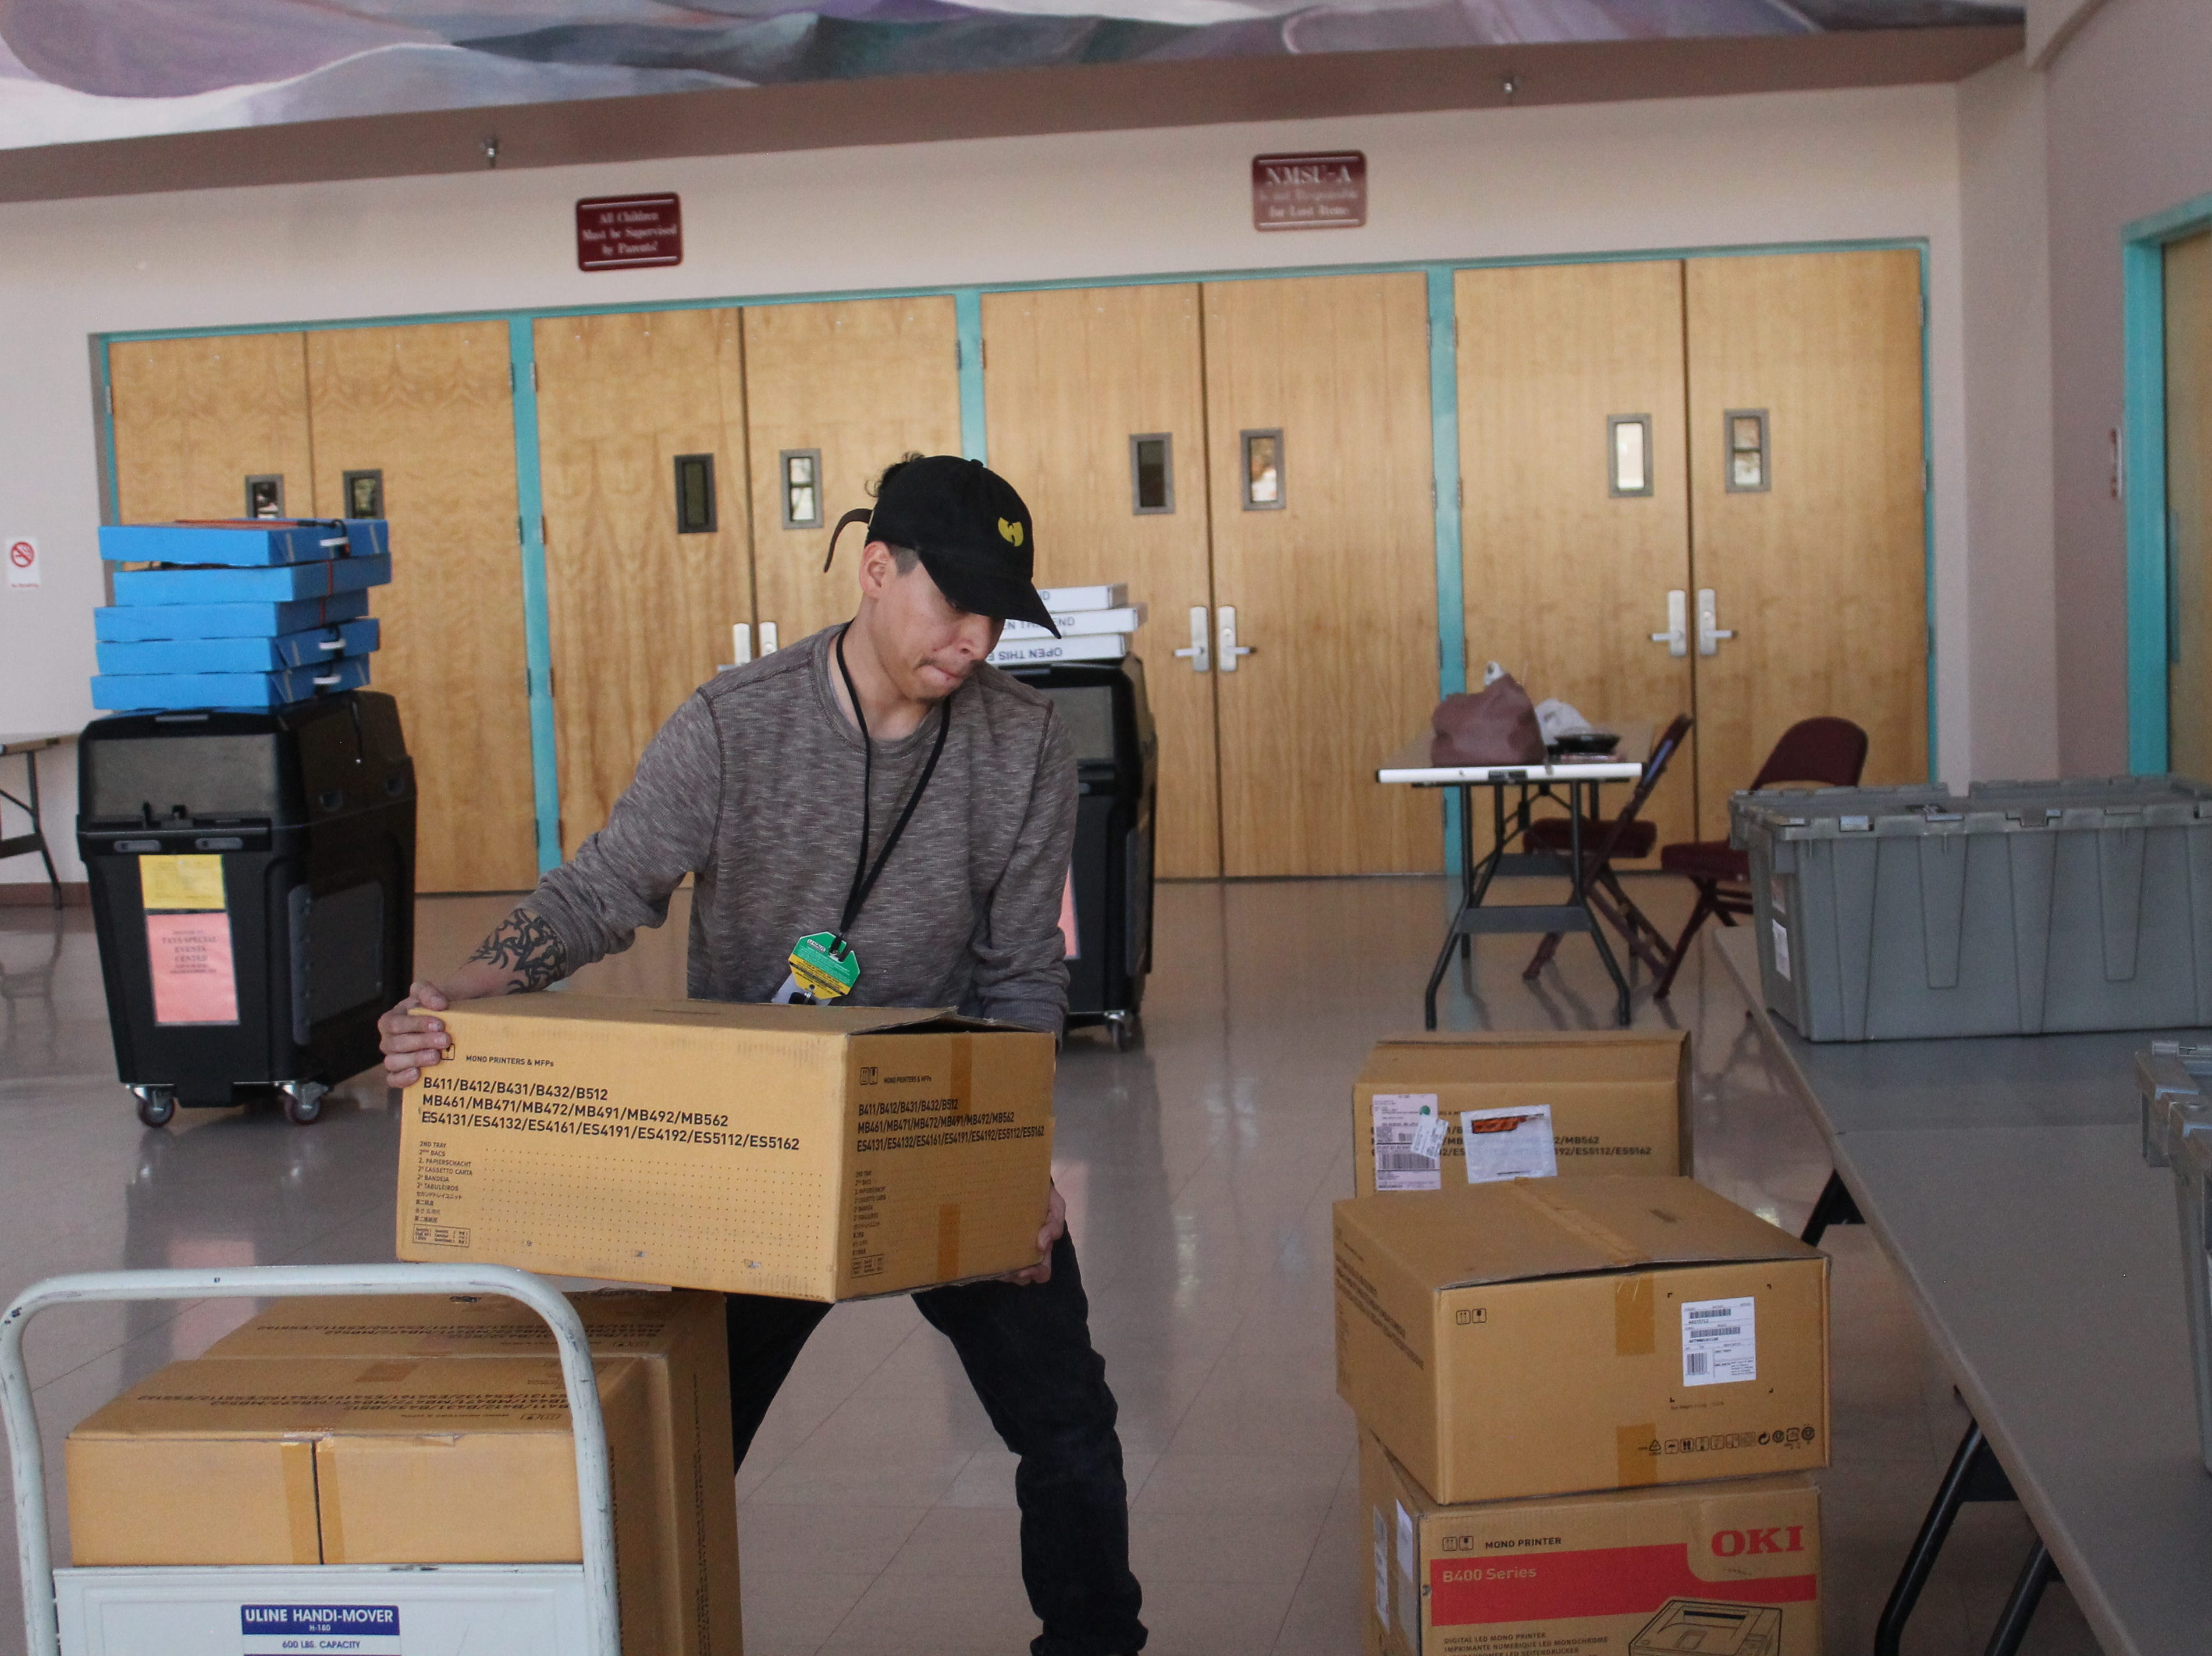 Adam Baca moves supplies into the Tays Center on the New Mexico State University Alamogordo campus in preparation for voting on Nov. 6.